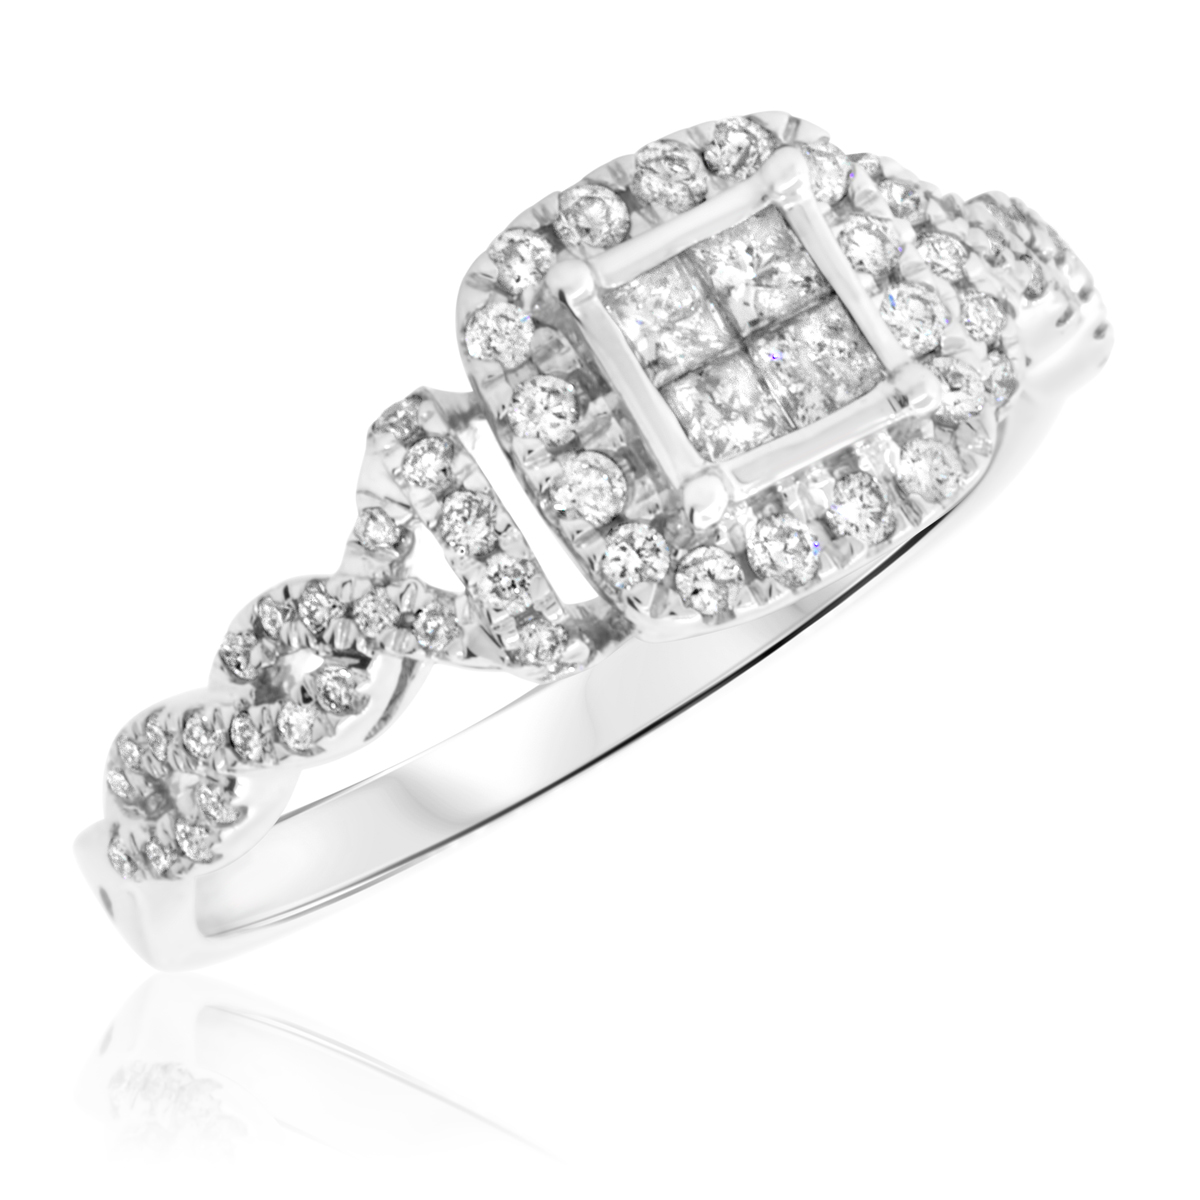 1/2 Carat T.W. Princess, Round Cut Diamond Ladies Engagement Ring 10K White Gold